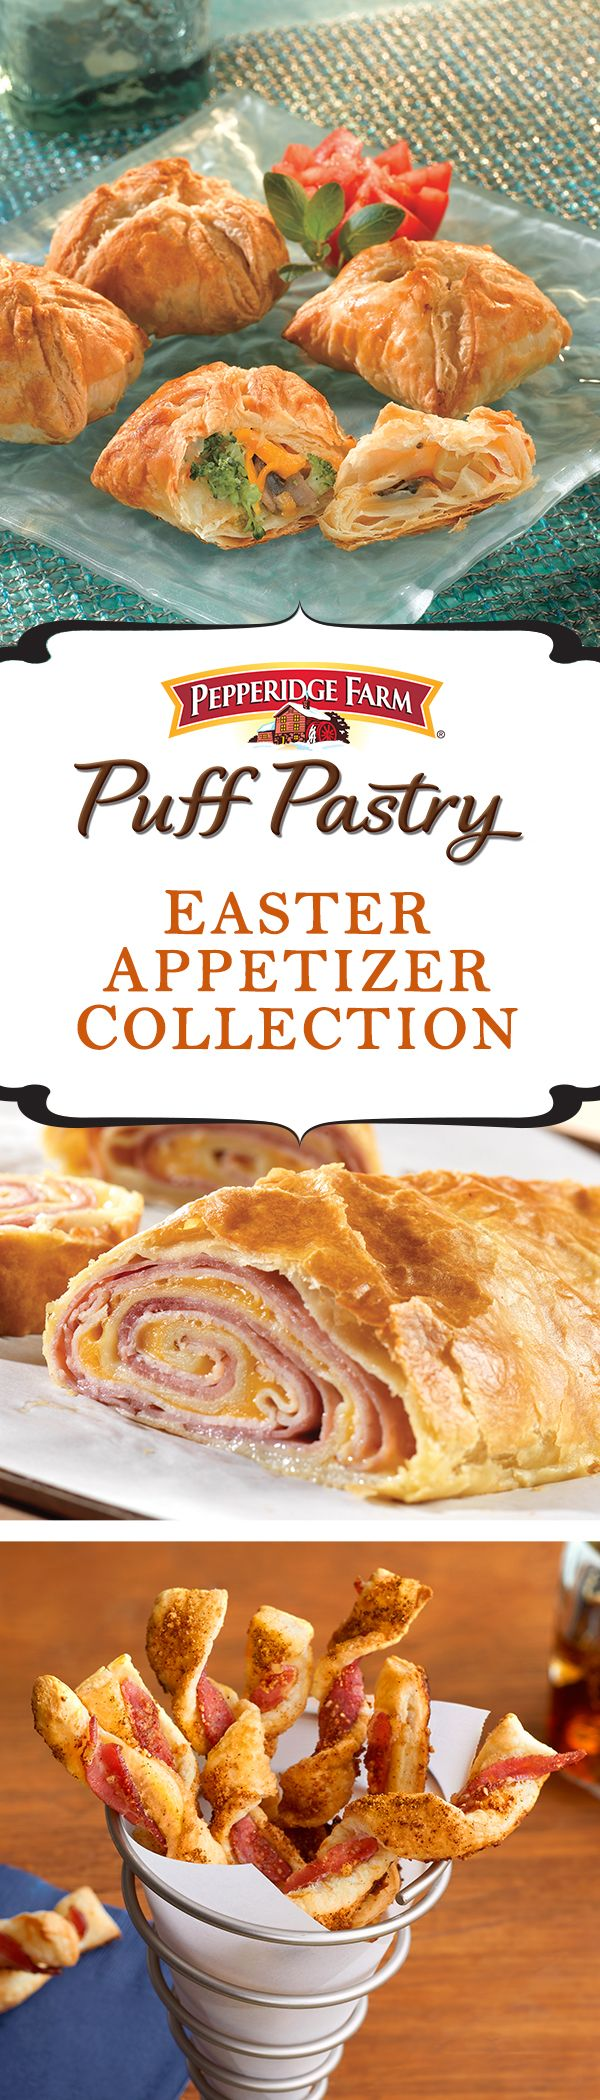 Puff Pastry Easter Appetizer Recipe Collection. Whether you're hosting Easter dinner or celebrating at a friend's house check out this list full of fabulous Easter appetizers to serve. Everyone will spring to the table for these Puff Pastry treats like Brown Sugar and Bacon Twists, Puffs Primavera and Ham and Cheese Stromboli.